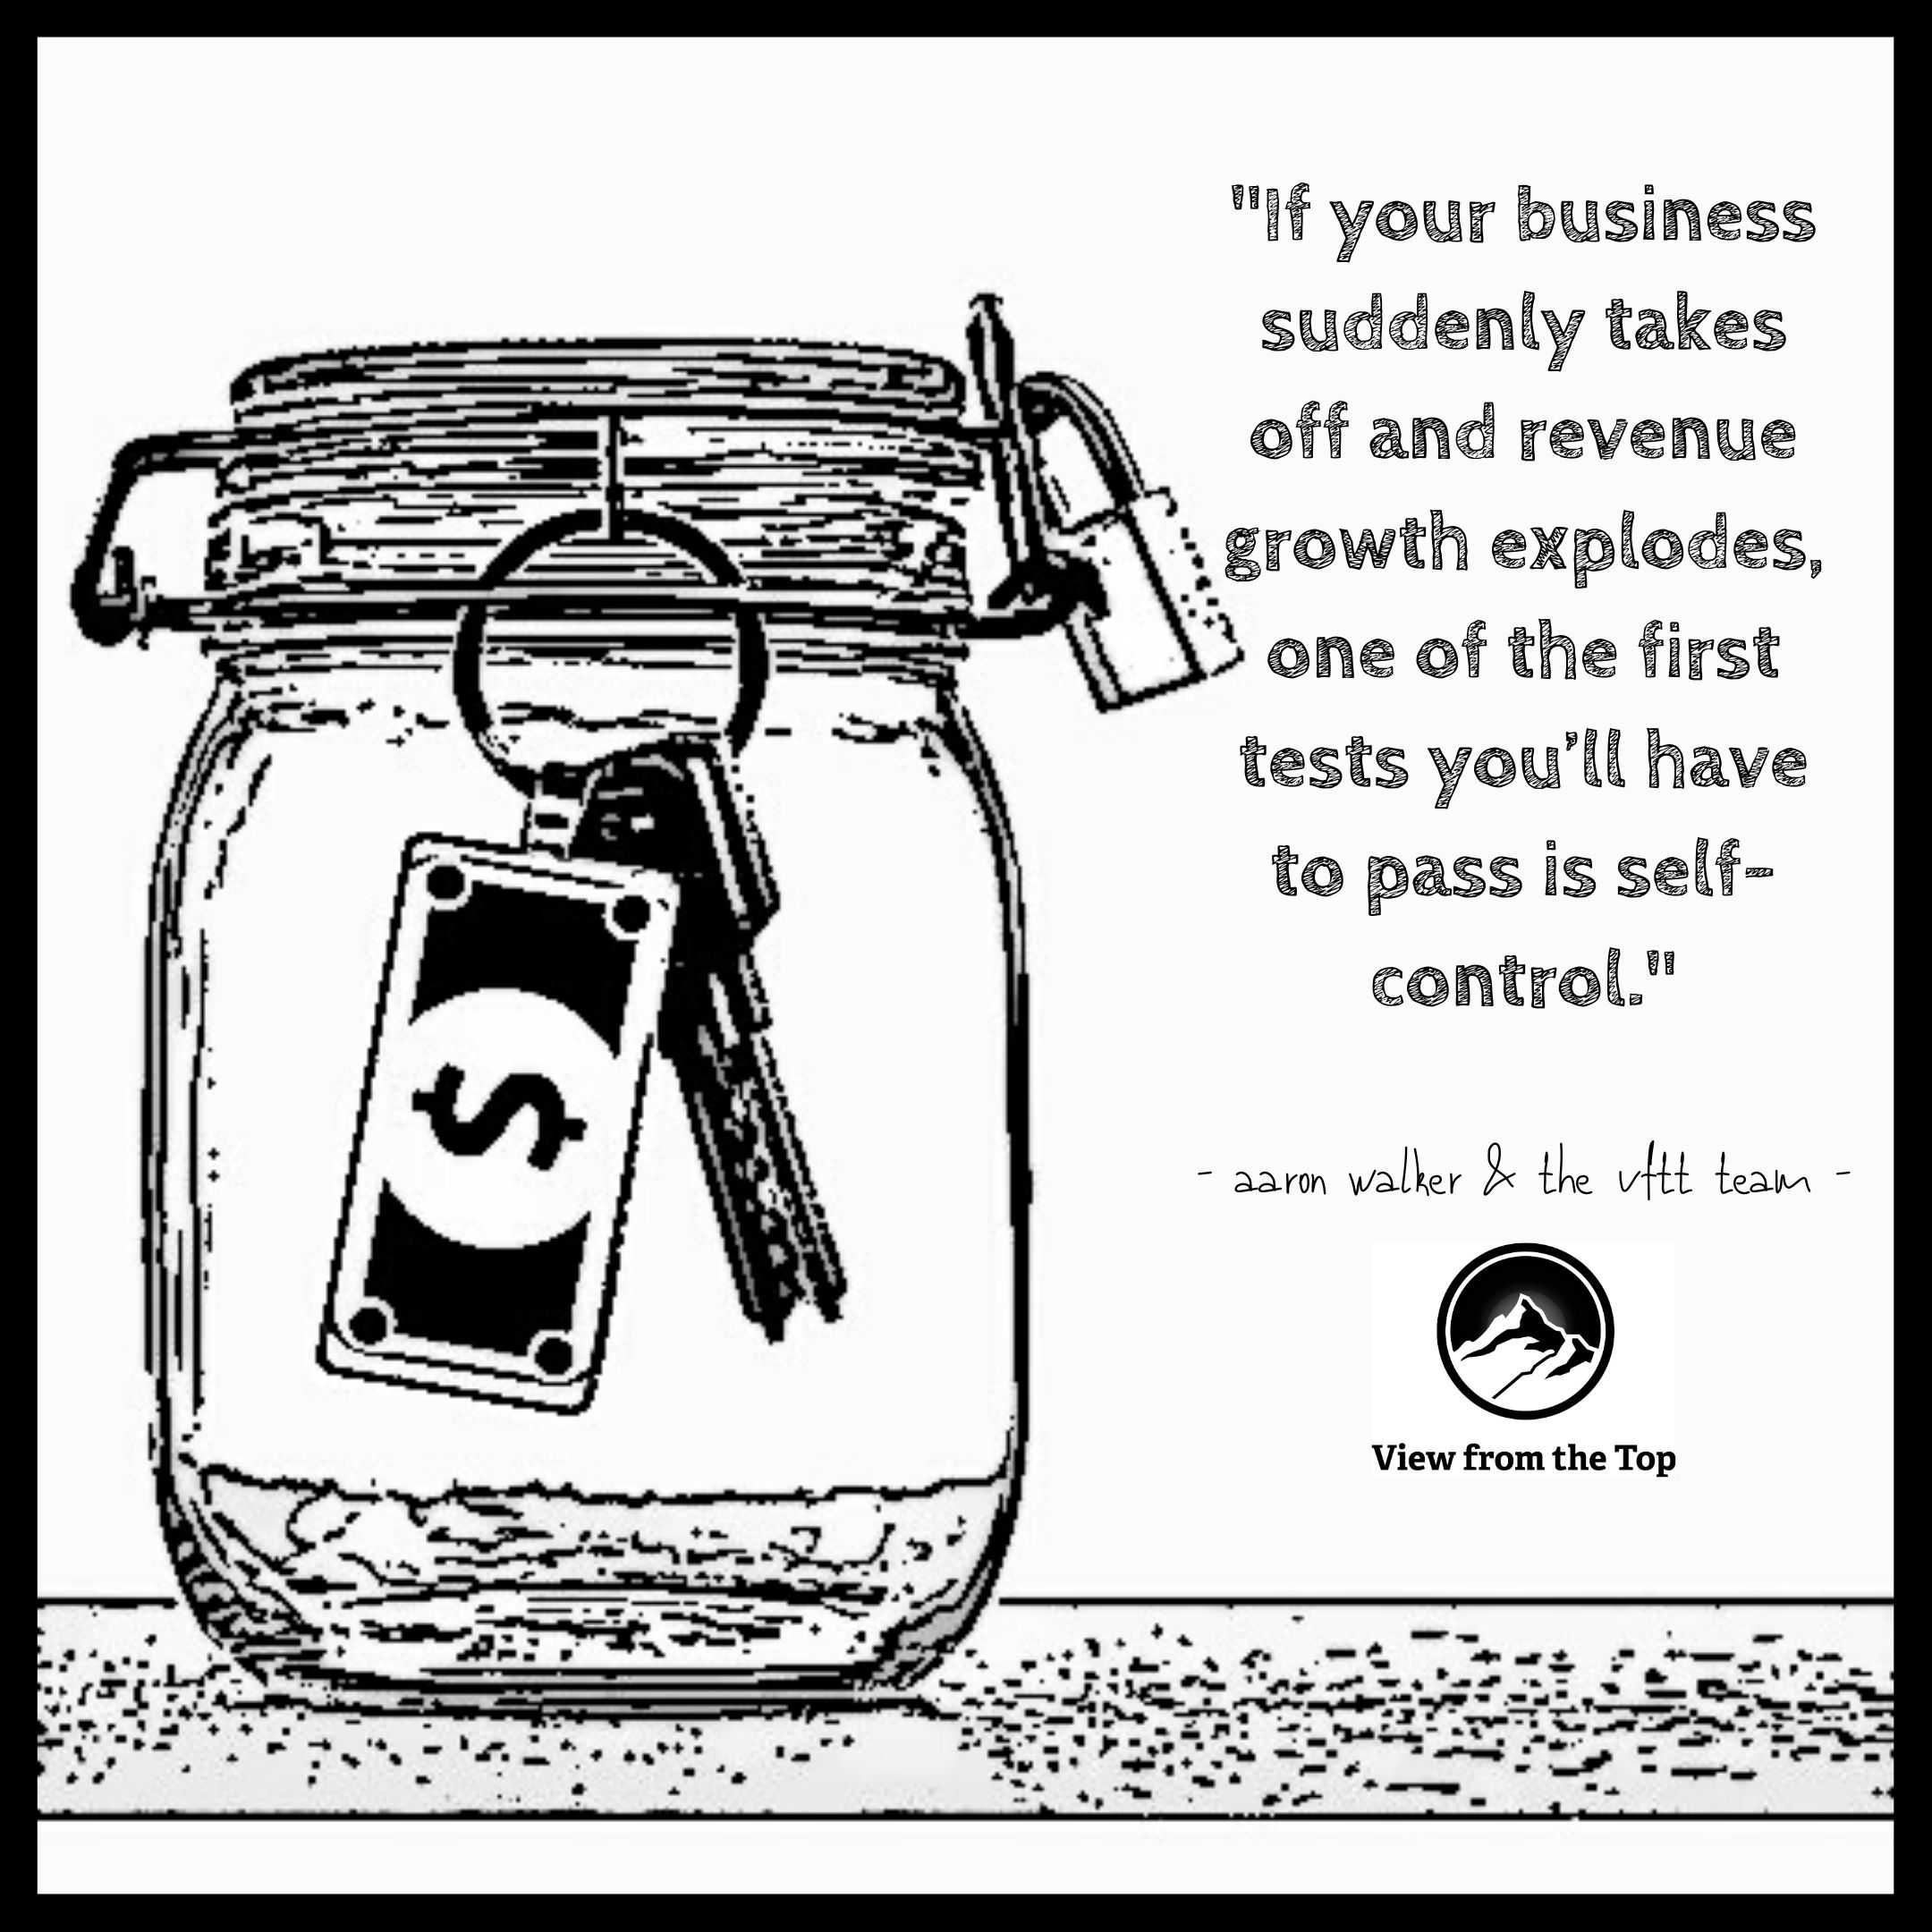 If your business suddenly takes off and revenue growth explodes, one of the first tests you'll have to pass is self-control.